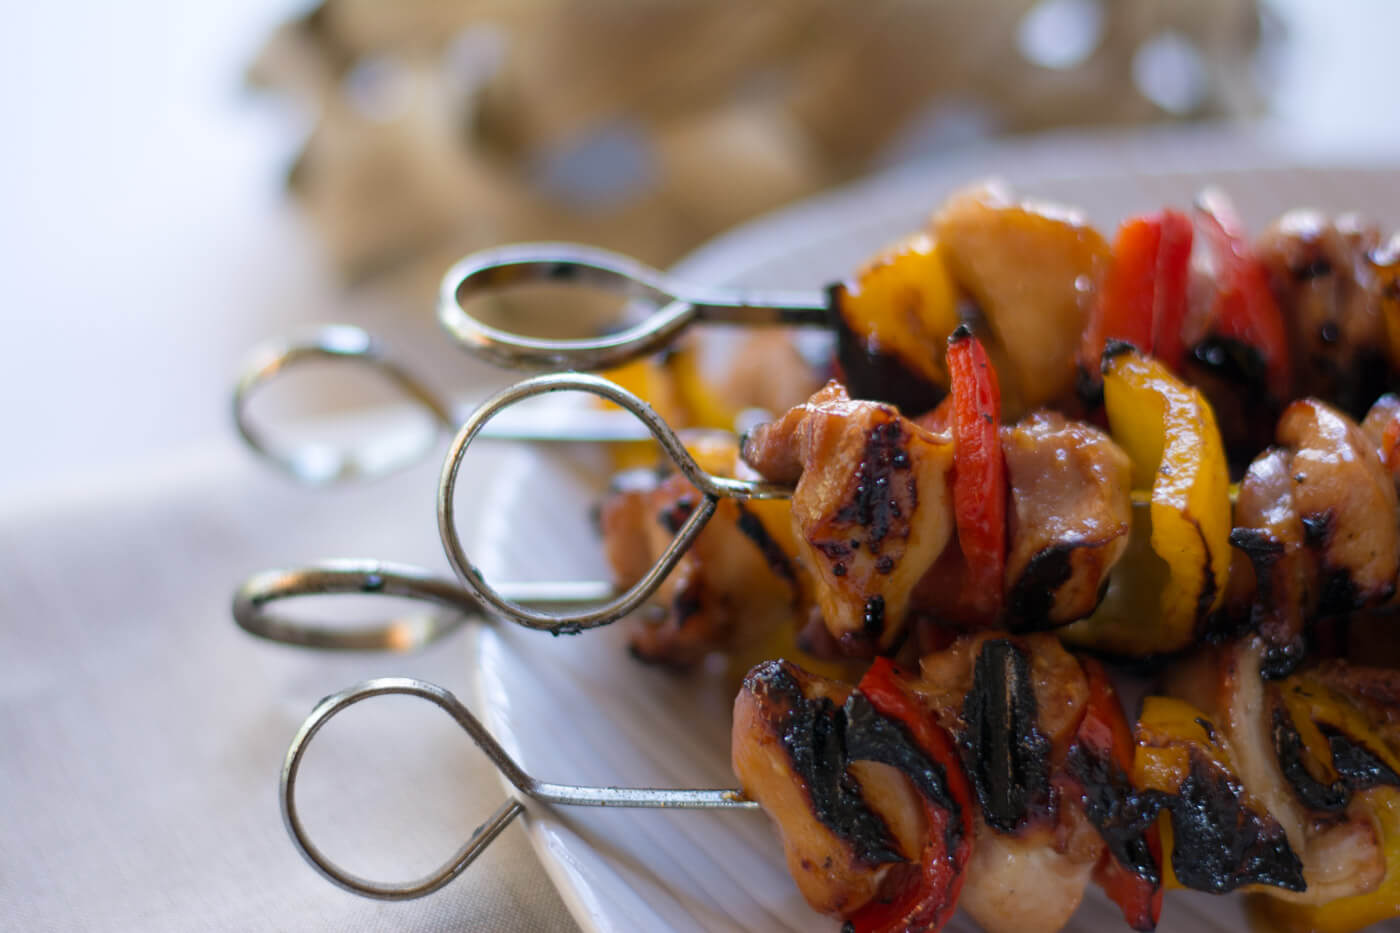 Grilled Honey Chicken Kebabs With a Nice Sear